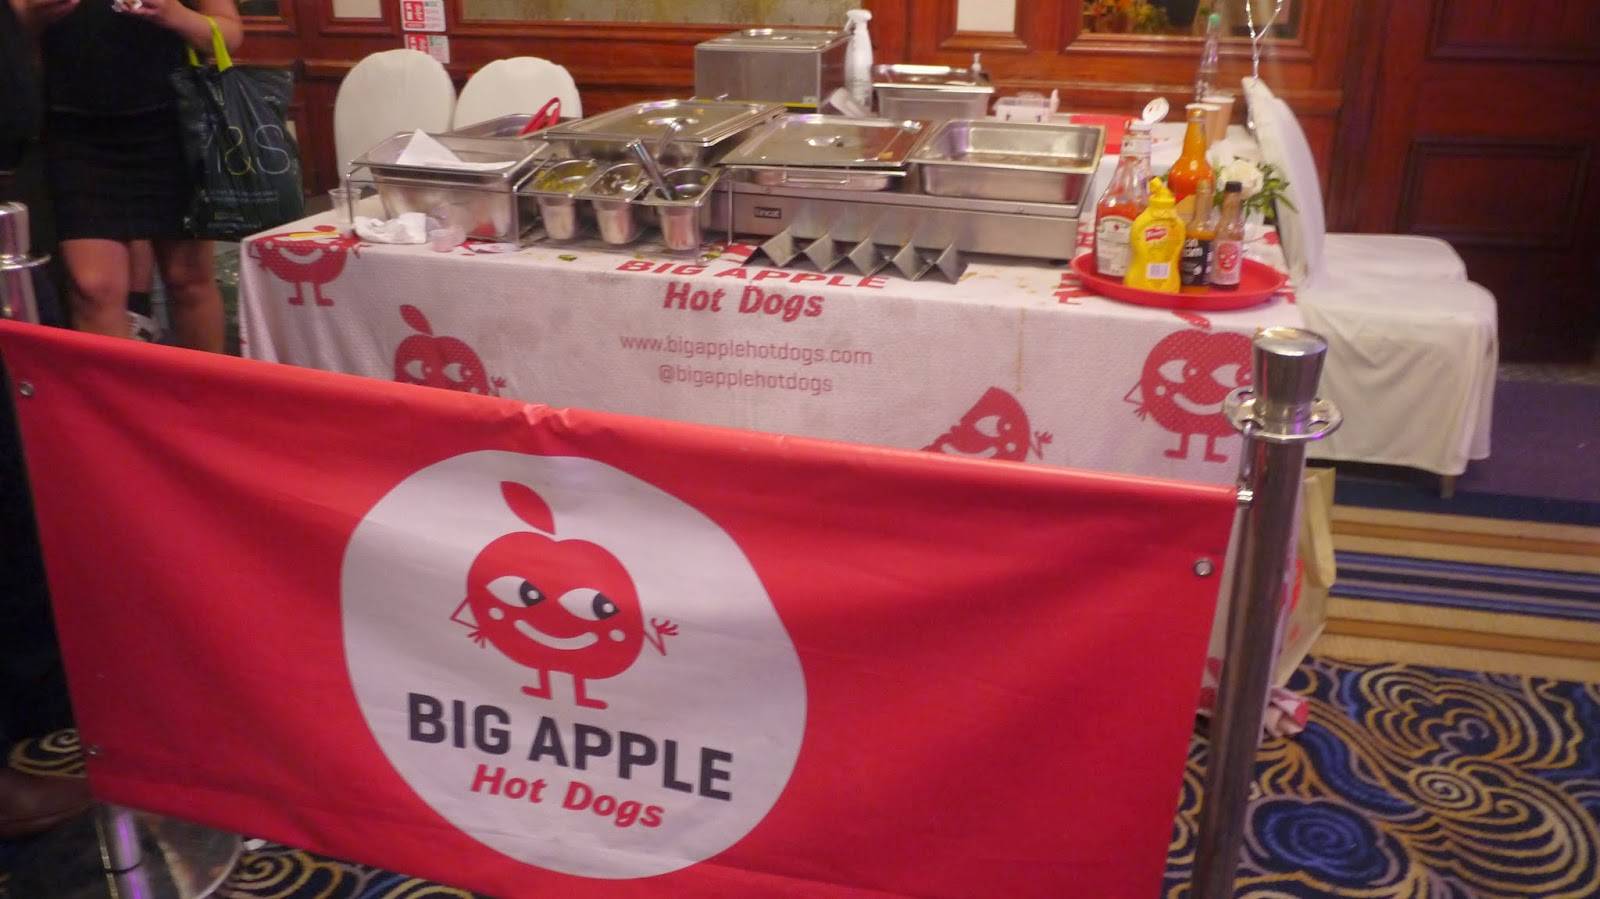 Big apple hot dogs at the Yelp 10th birthday party